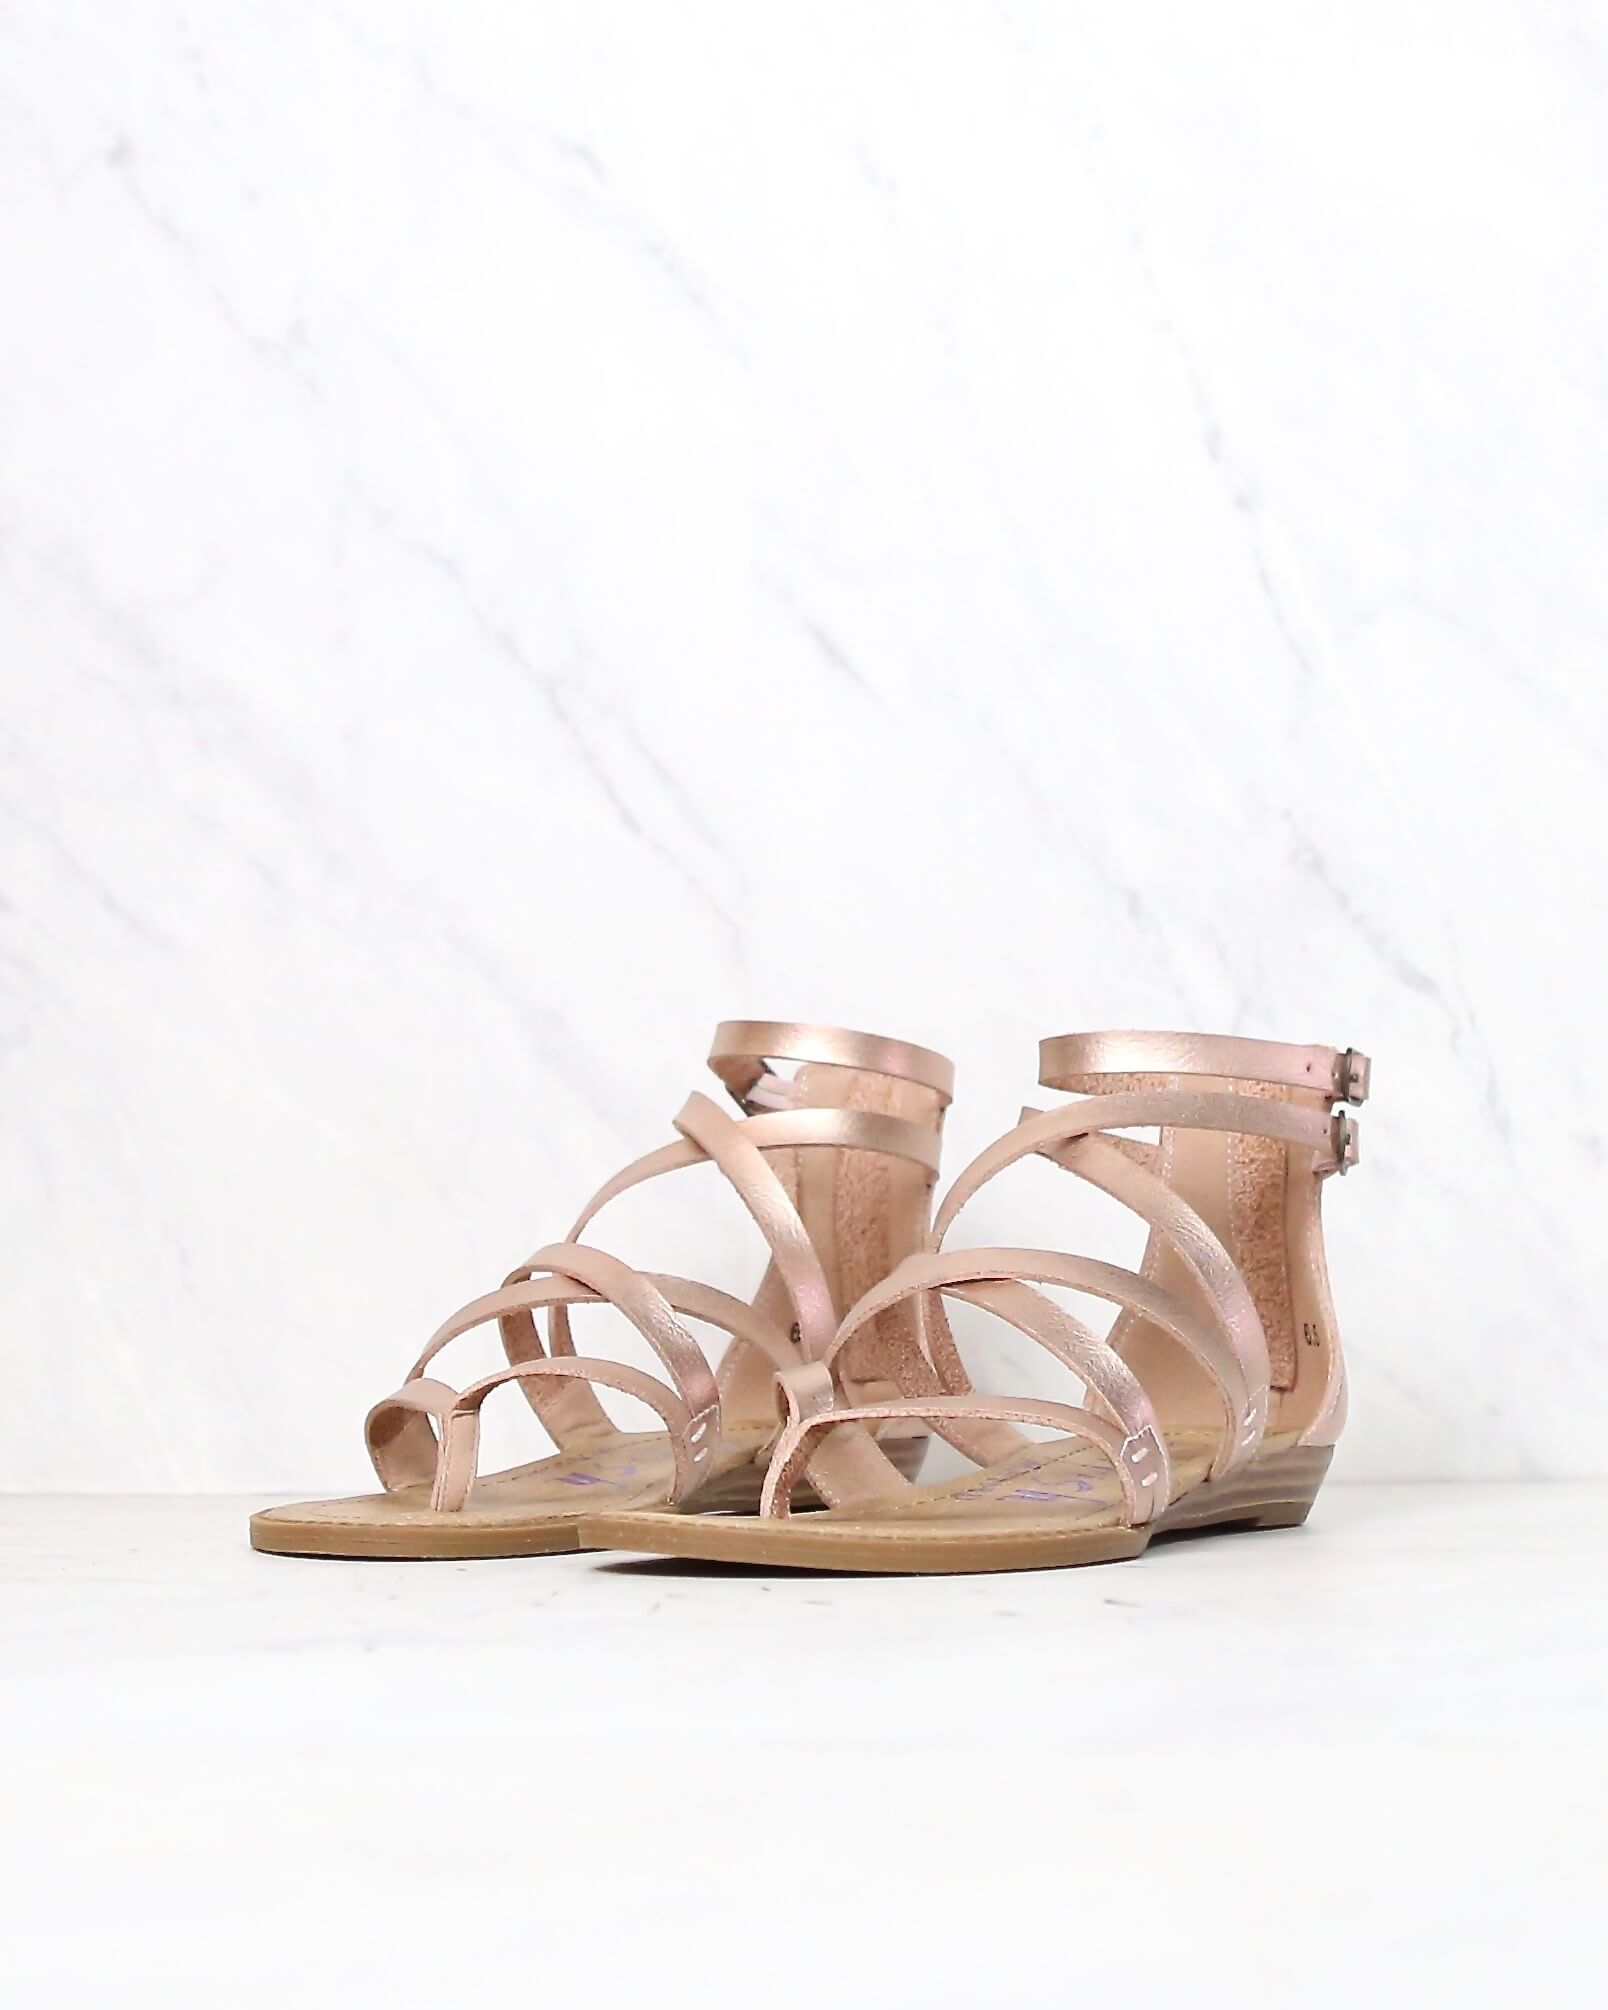 Bungalow Wedge Sandal in Rose Gold